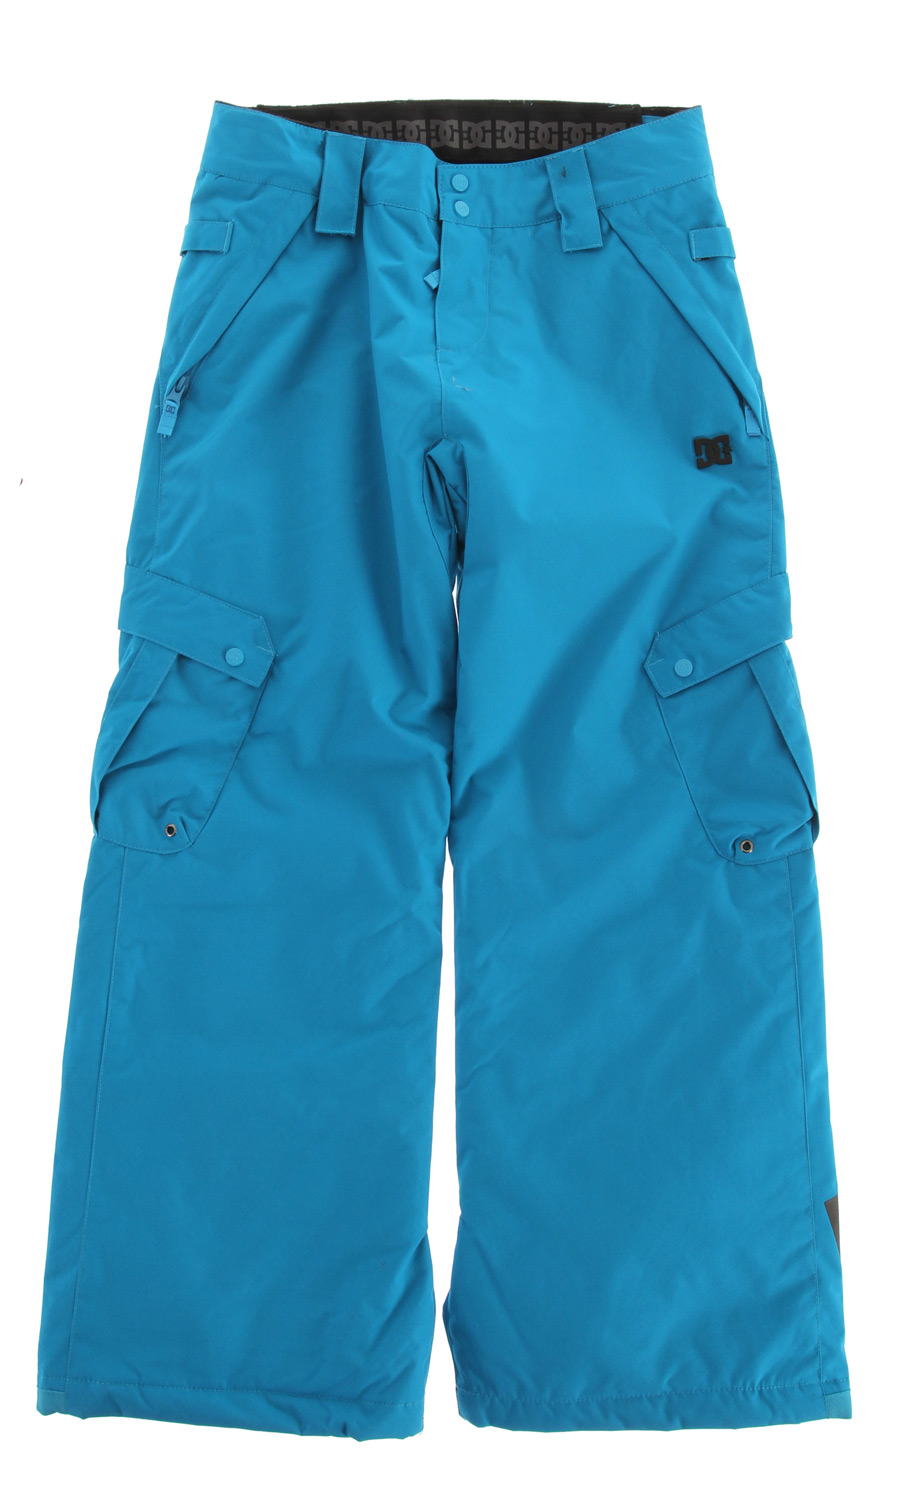 Snowboard DONON is featuring 8K breathable and waterproof fabric and 80g insulation to keep every kid warm and dry in the snow. Shant control in cargo pockets allows you to adjust the leg length and wear it season after season.Key Features of the DC Donon Snowboard Pants: 8,000mm Waterproof 8,000g Breathability Standard fit 80 gram insulation Critically taped seams Shant control Boot gaiter - $69.95